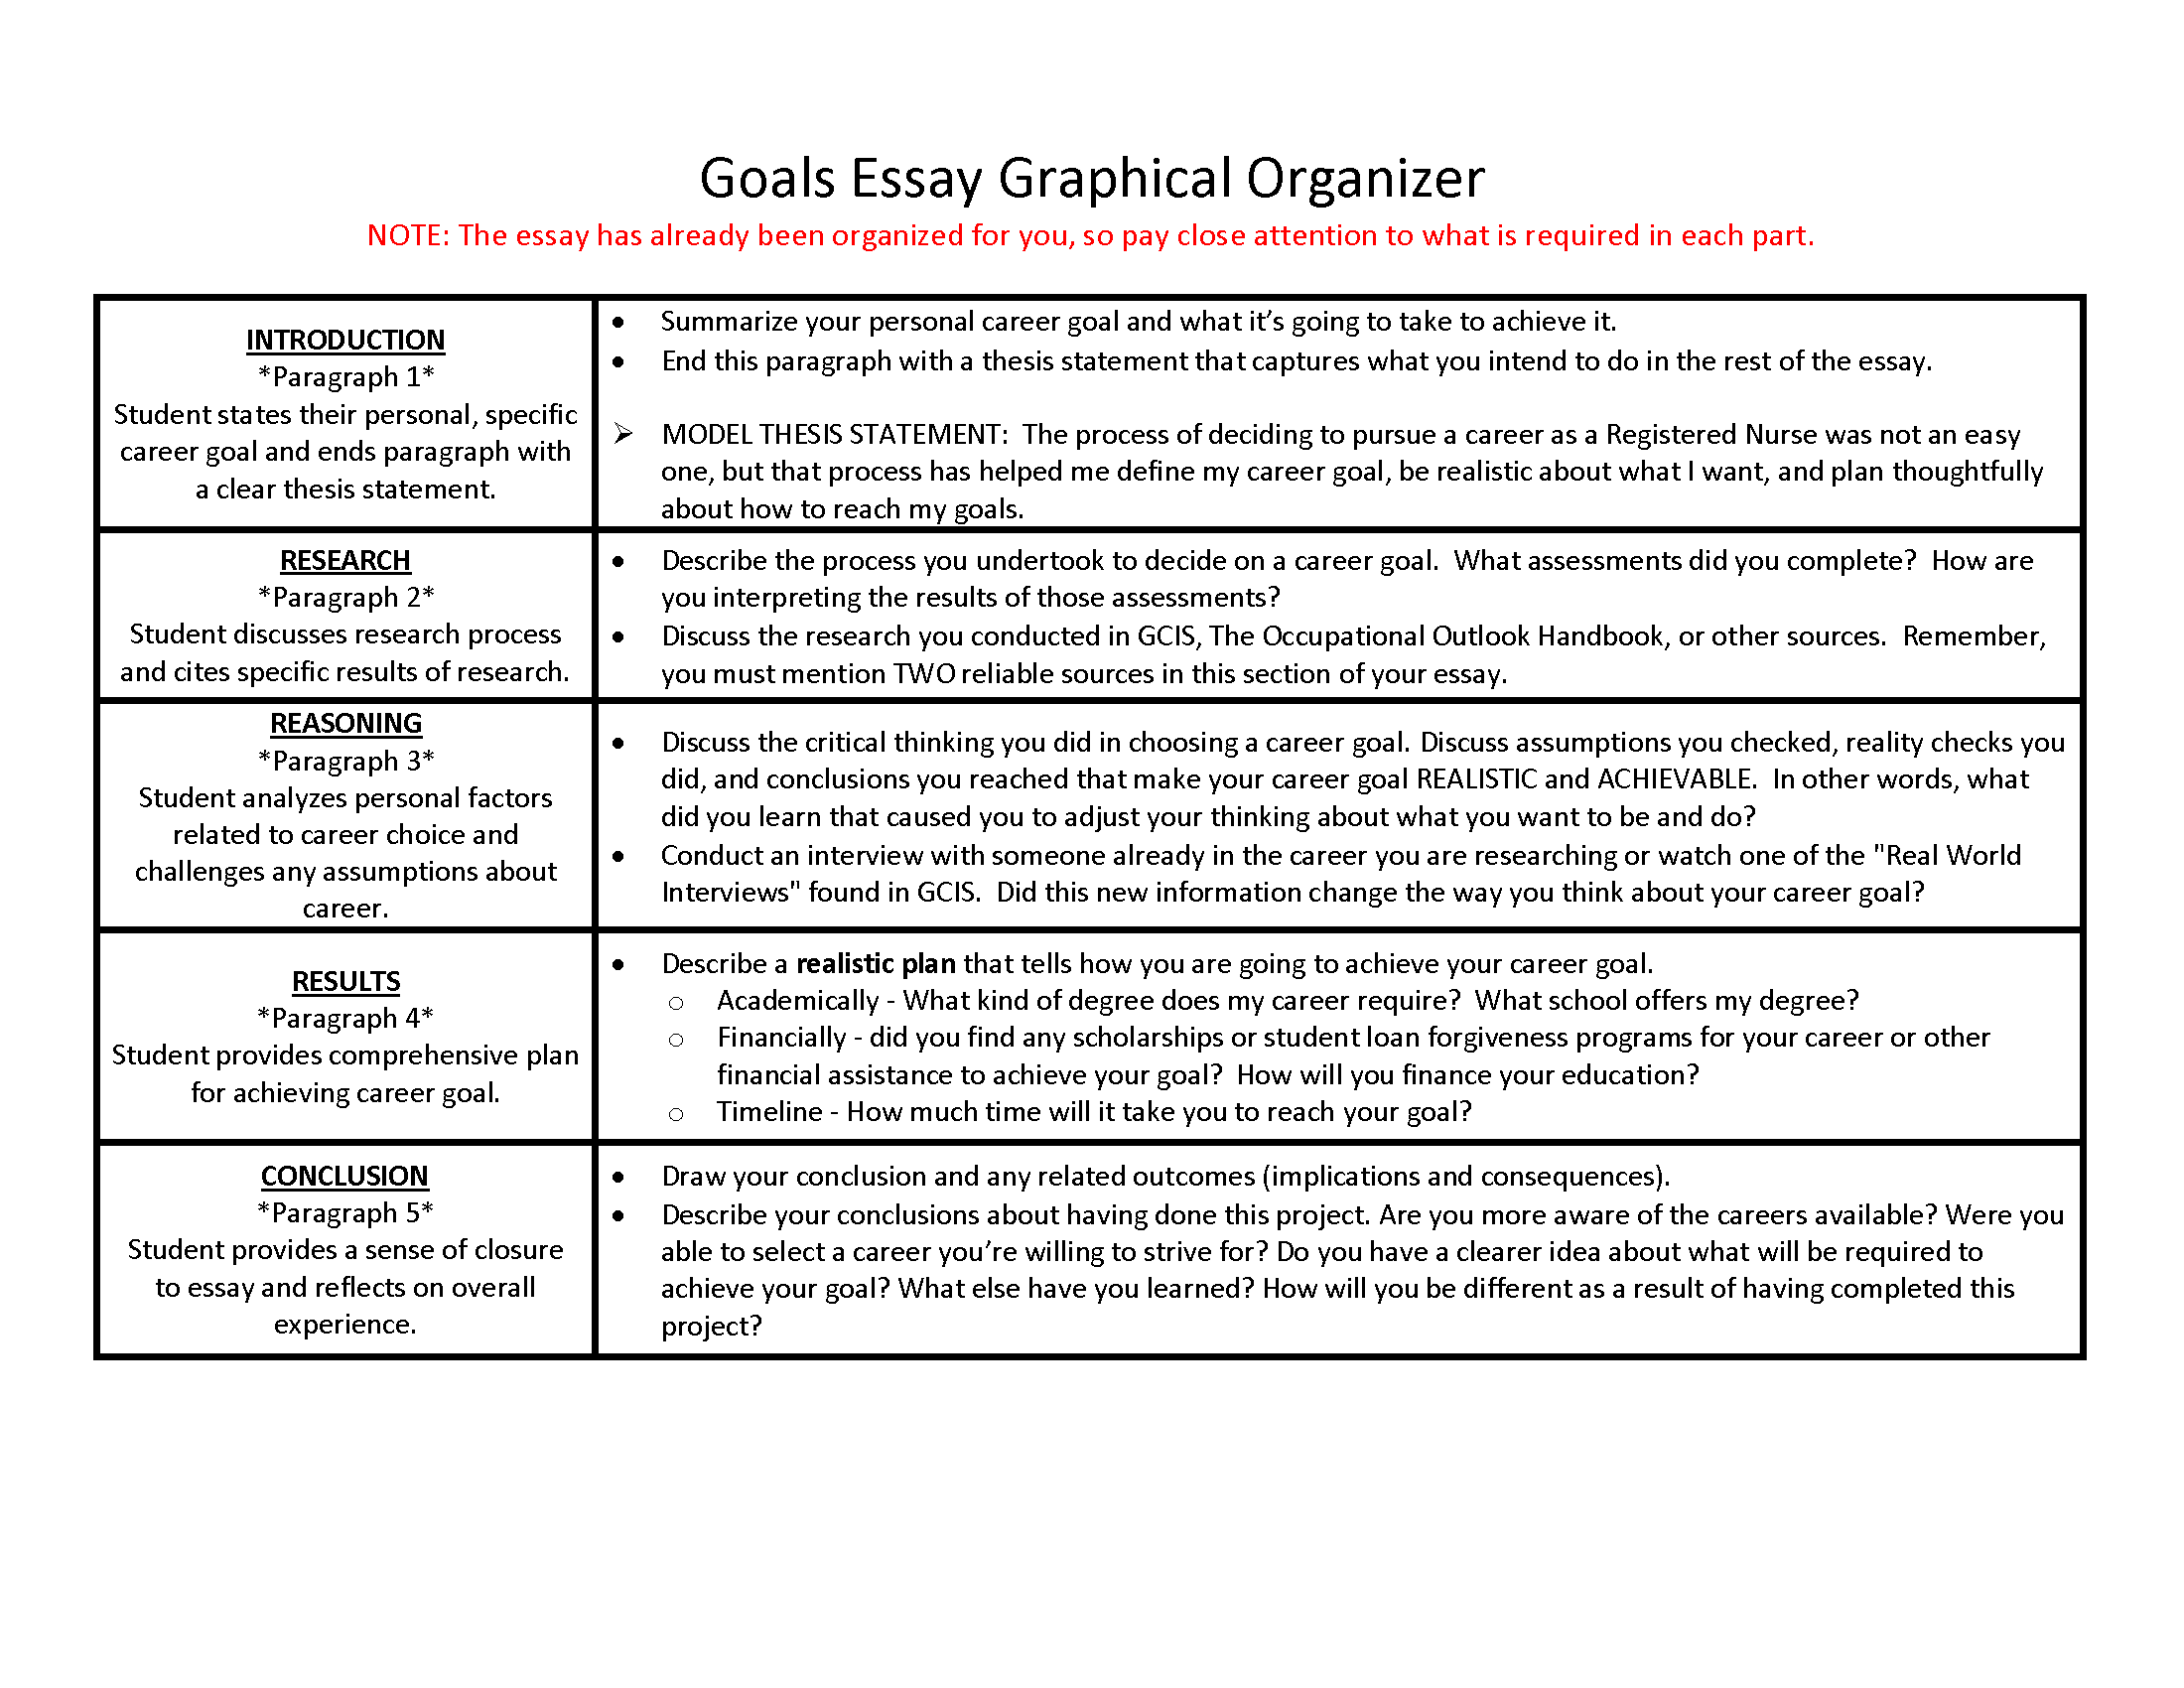 What Is A Thesis Of An Essay Joseph English Essayist Essay About Learning English Language also Frankenstein Essay Thesis Assignments Assignment Help And Homework Help Goals And Aspirations  Essays On English Literature